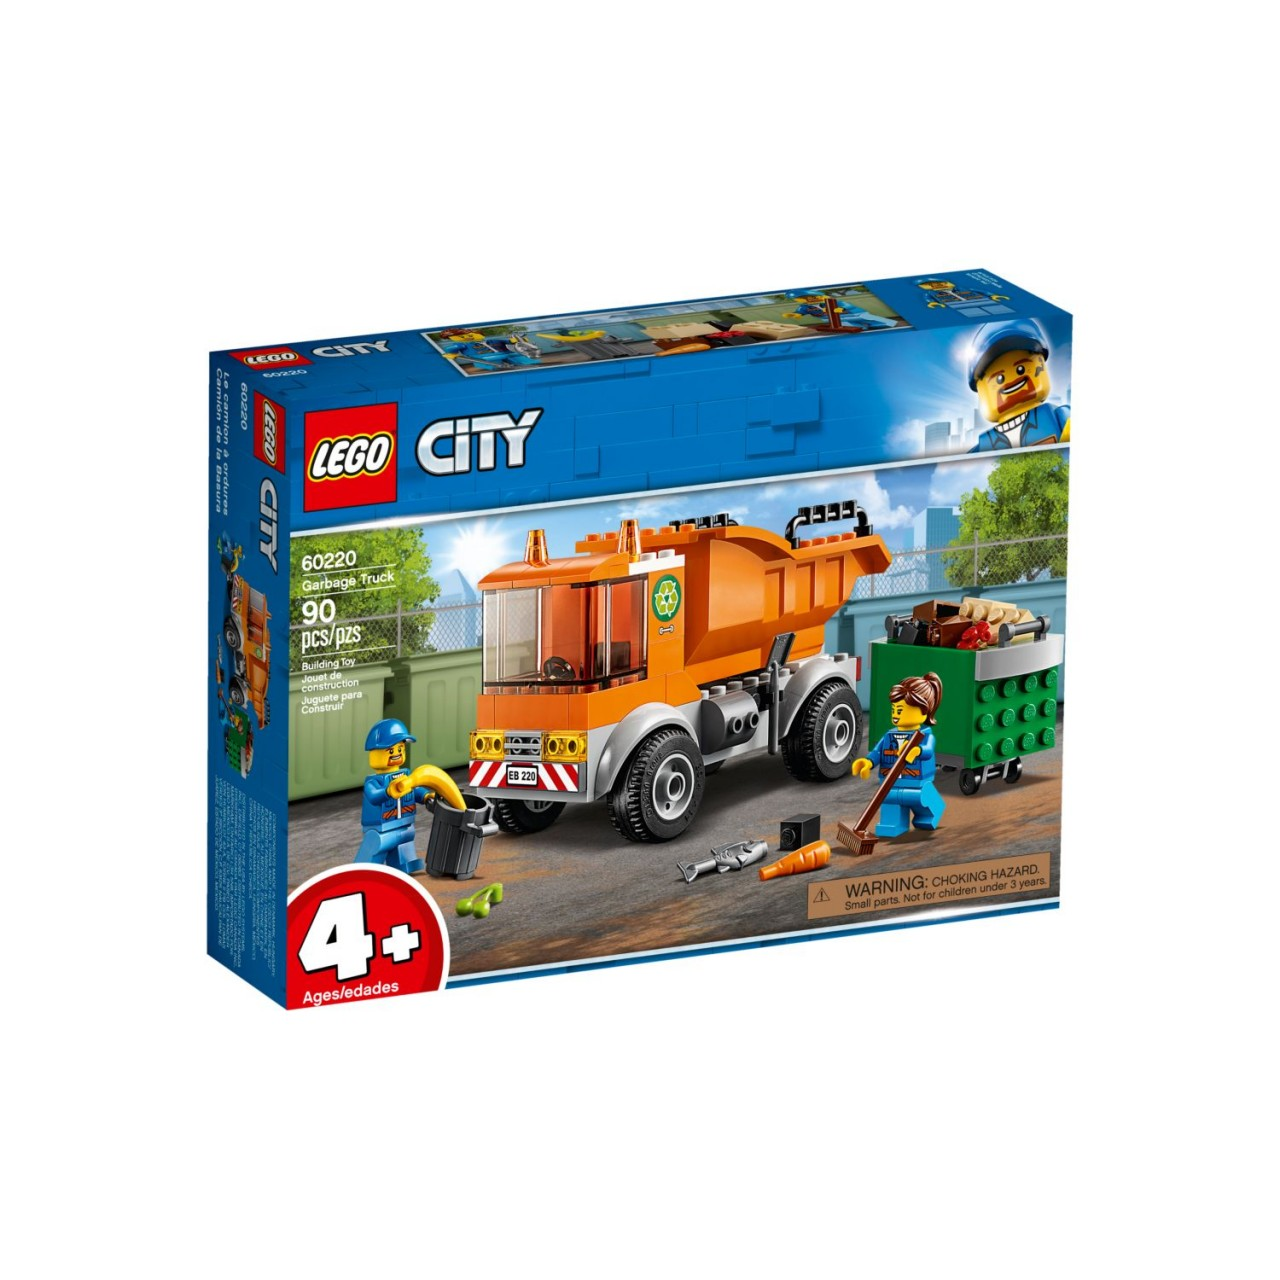 LEGO CITY 60220 Müllabfuhr